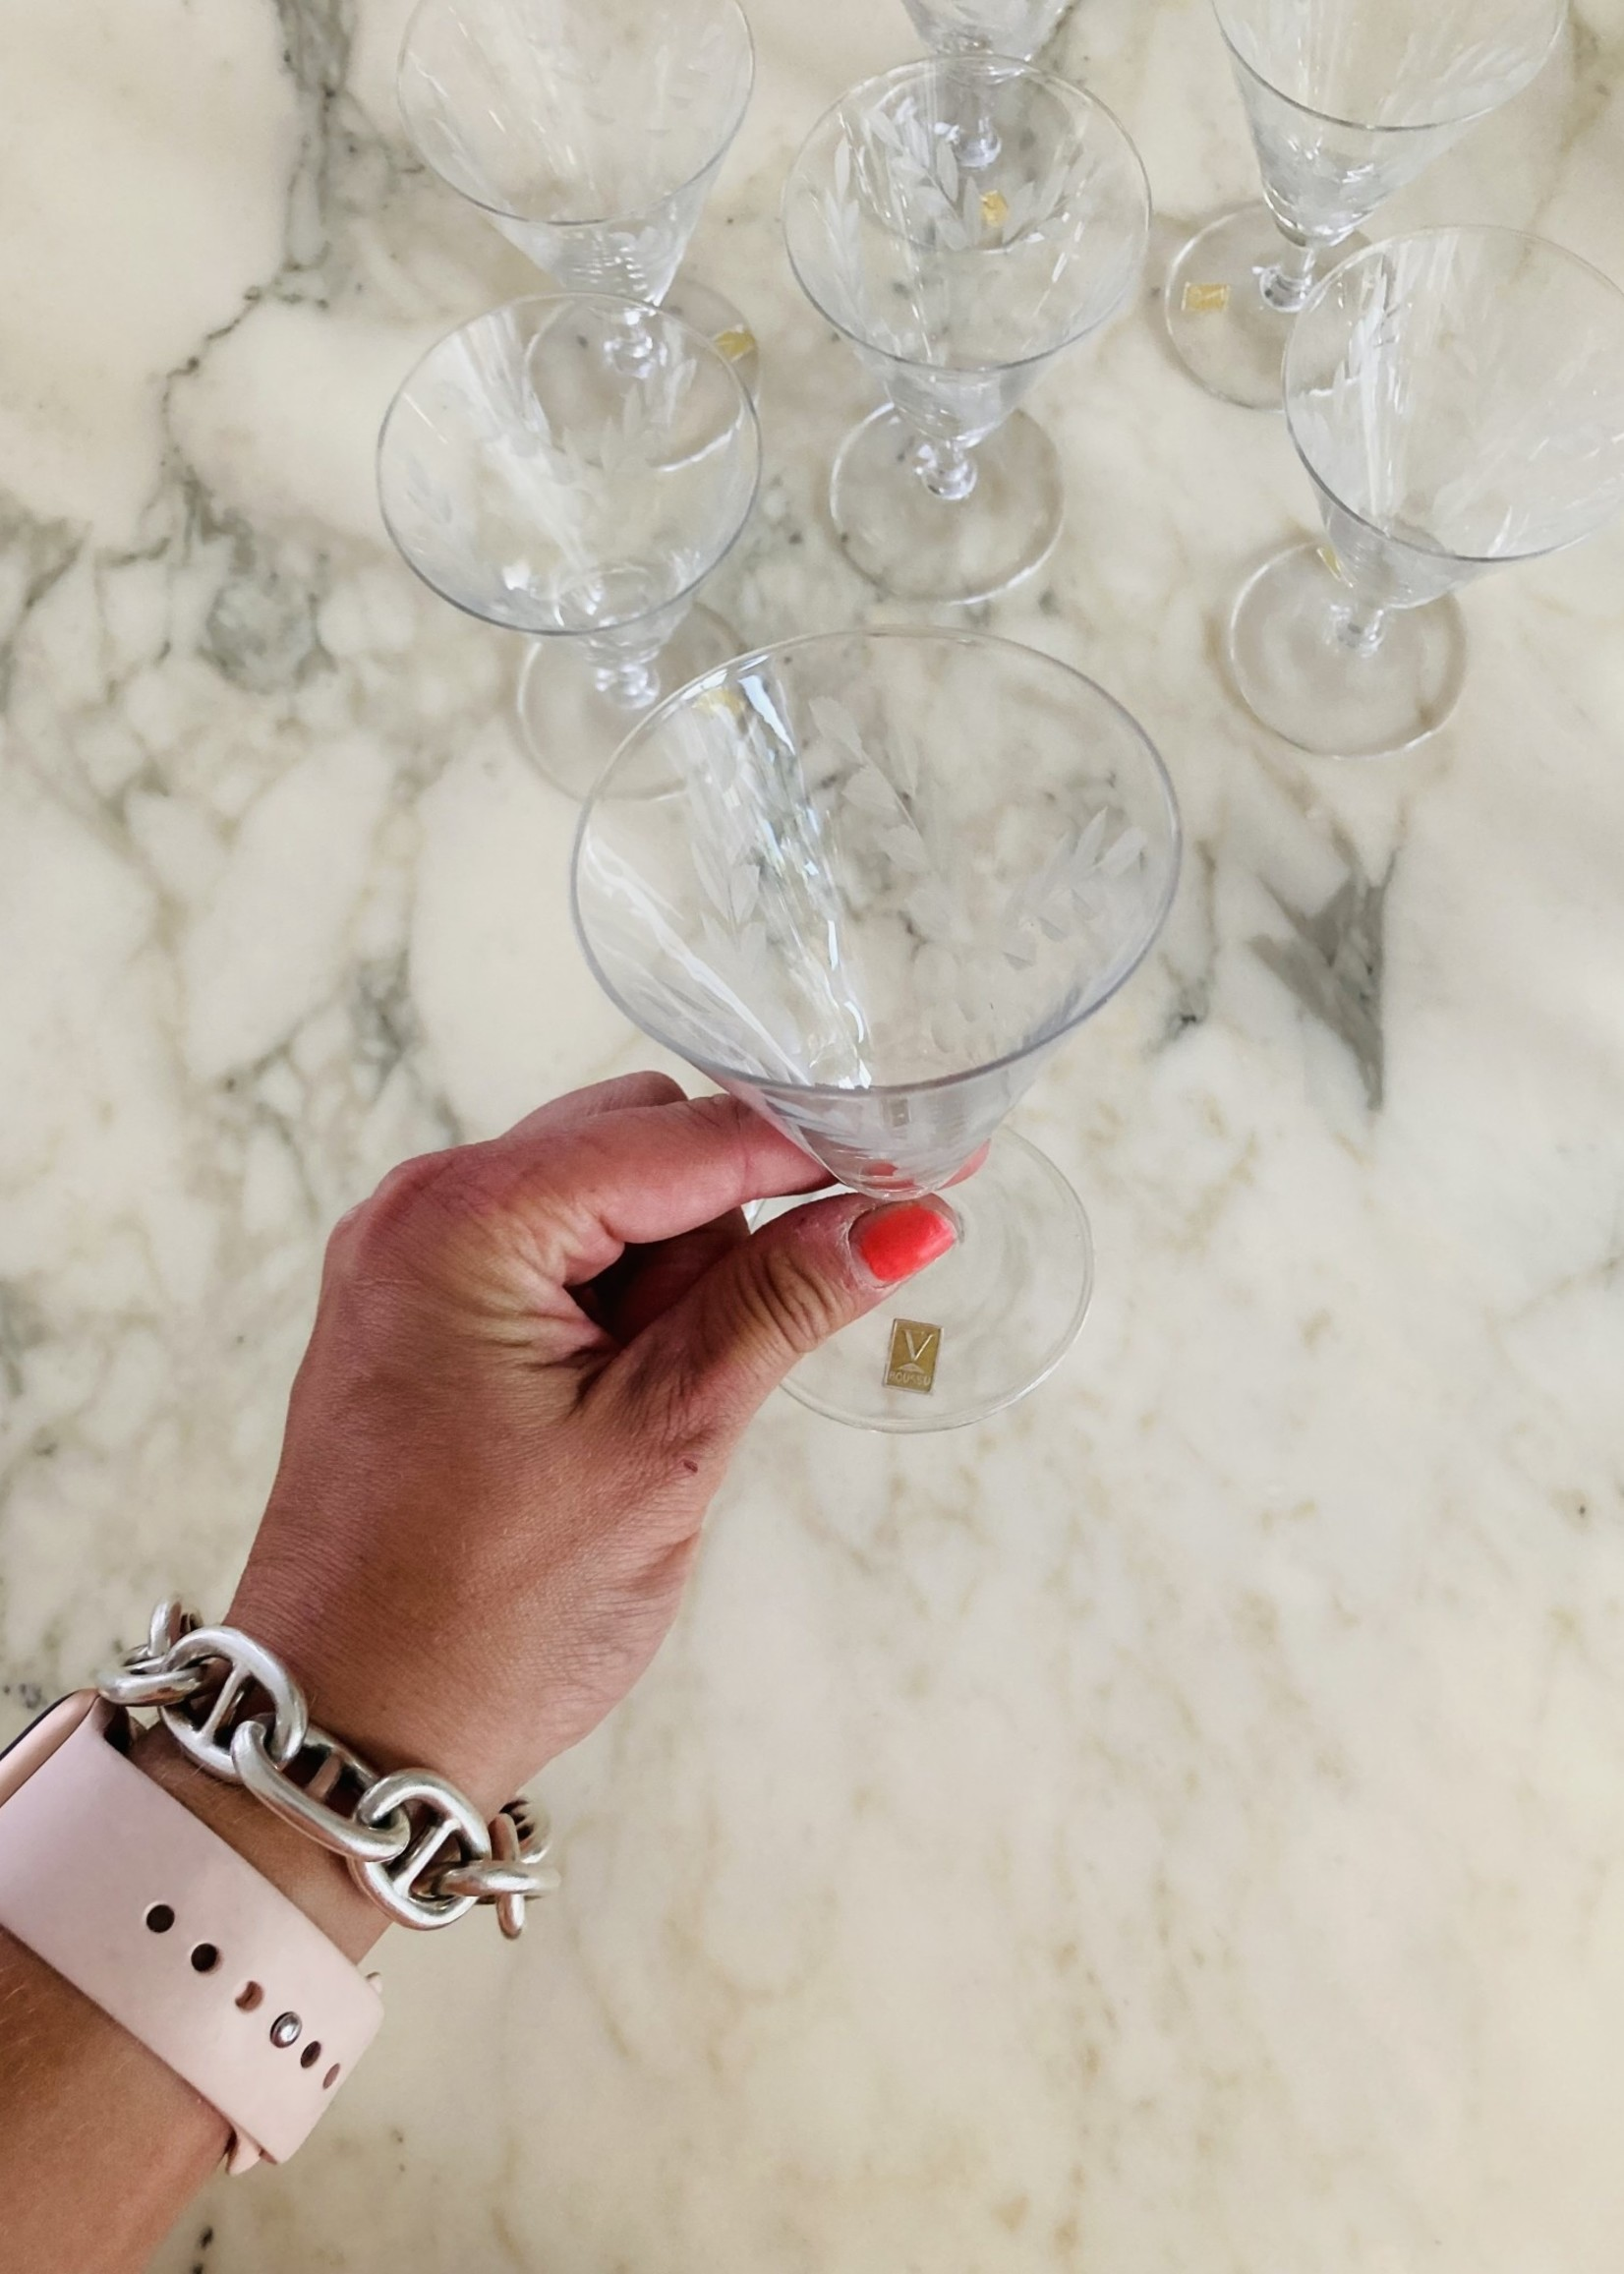 VB Carved crystal conic small Wine glasses from VB Boussu